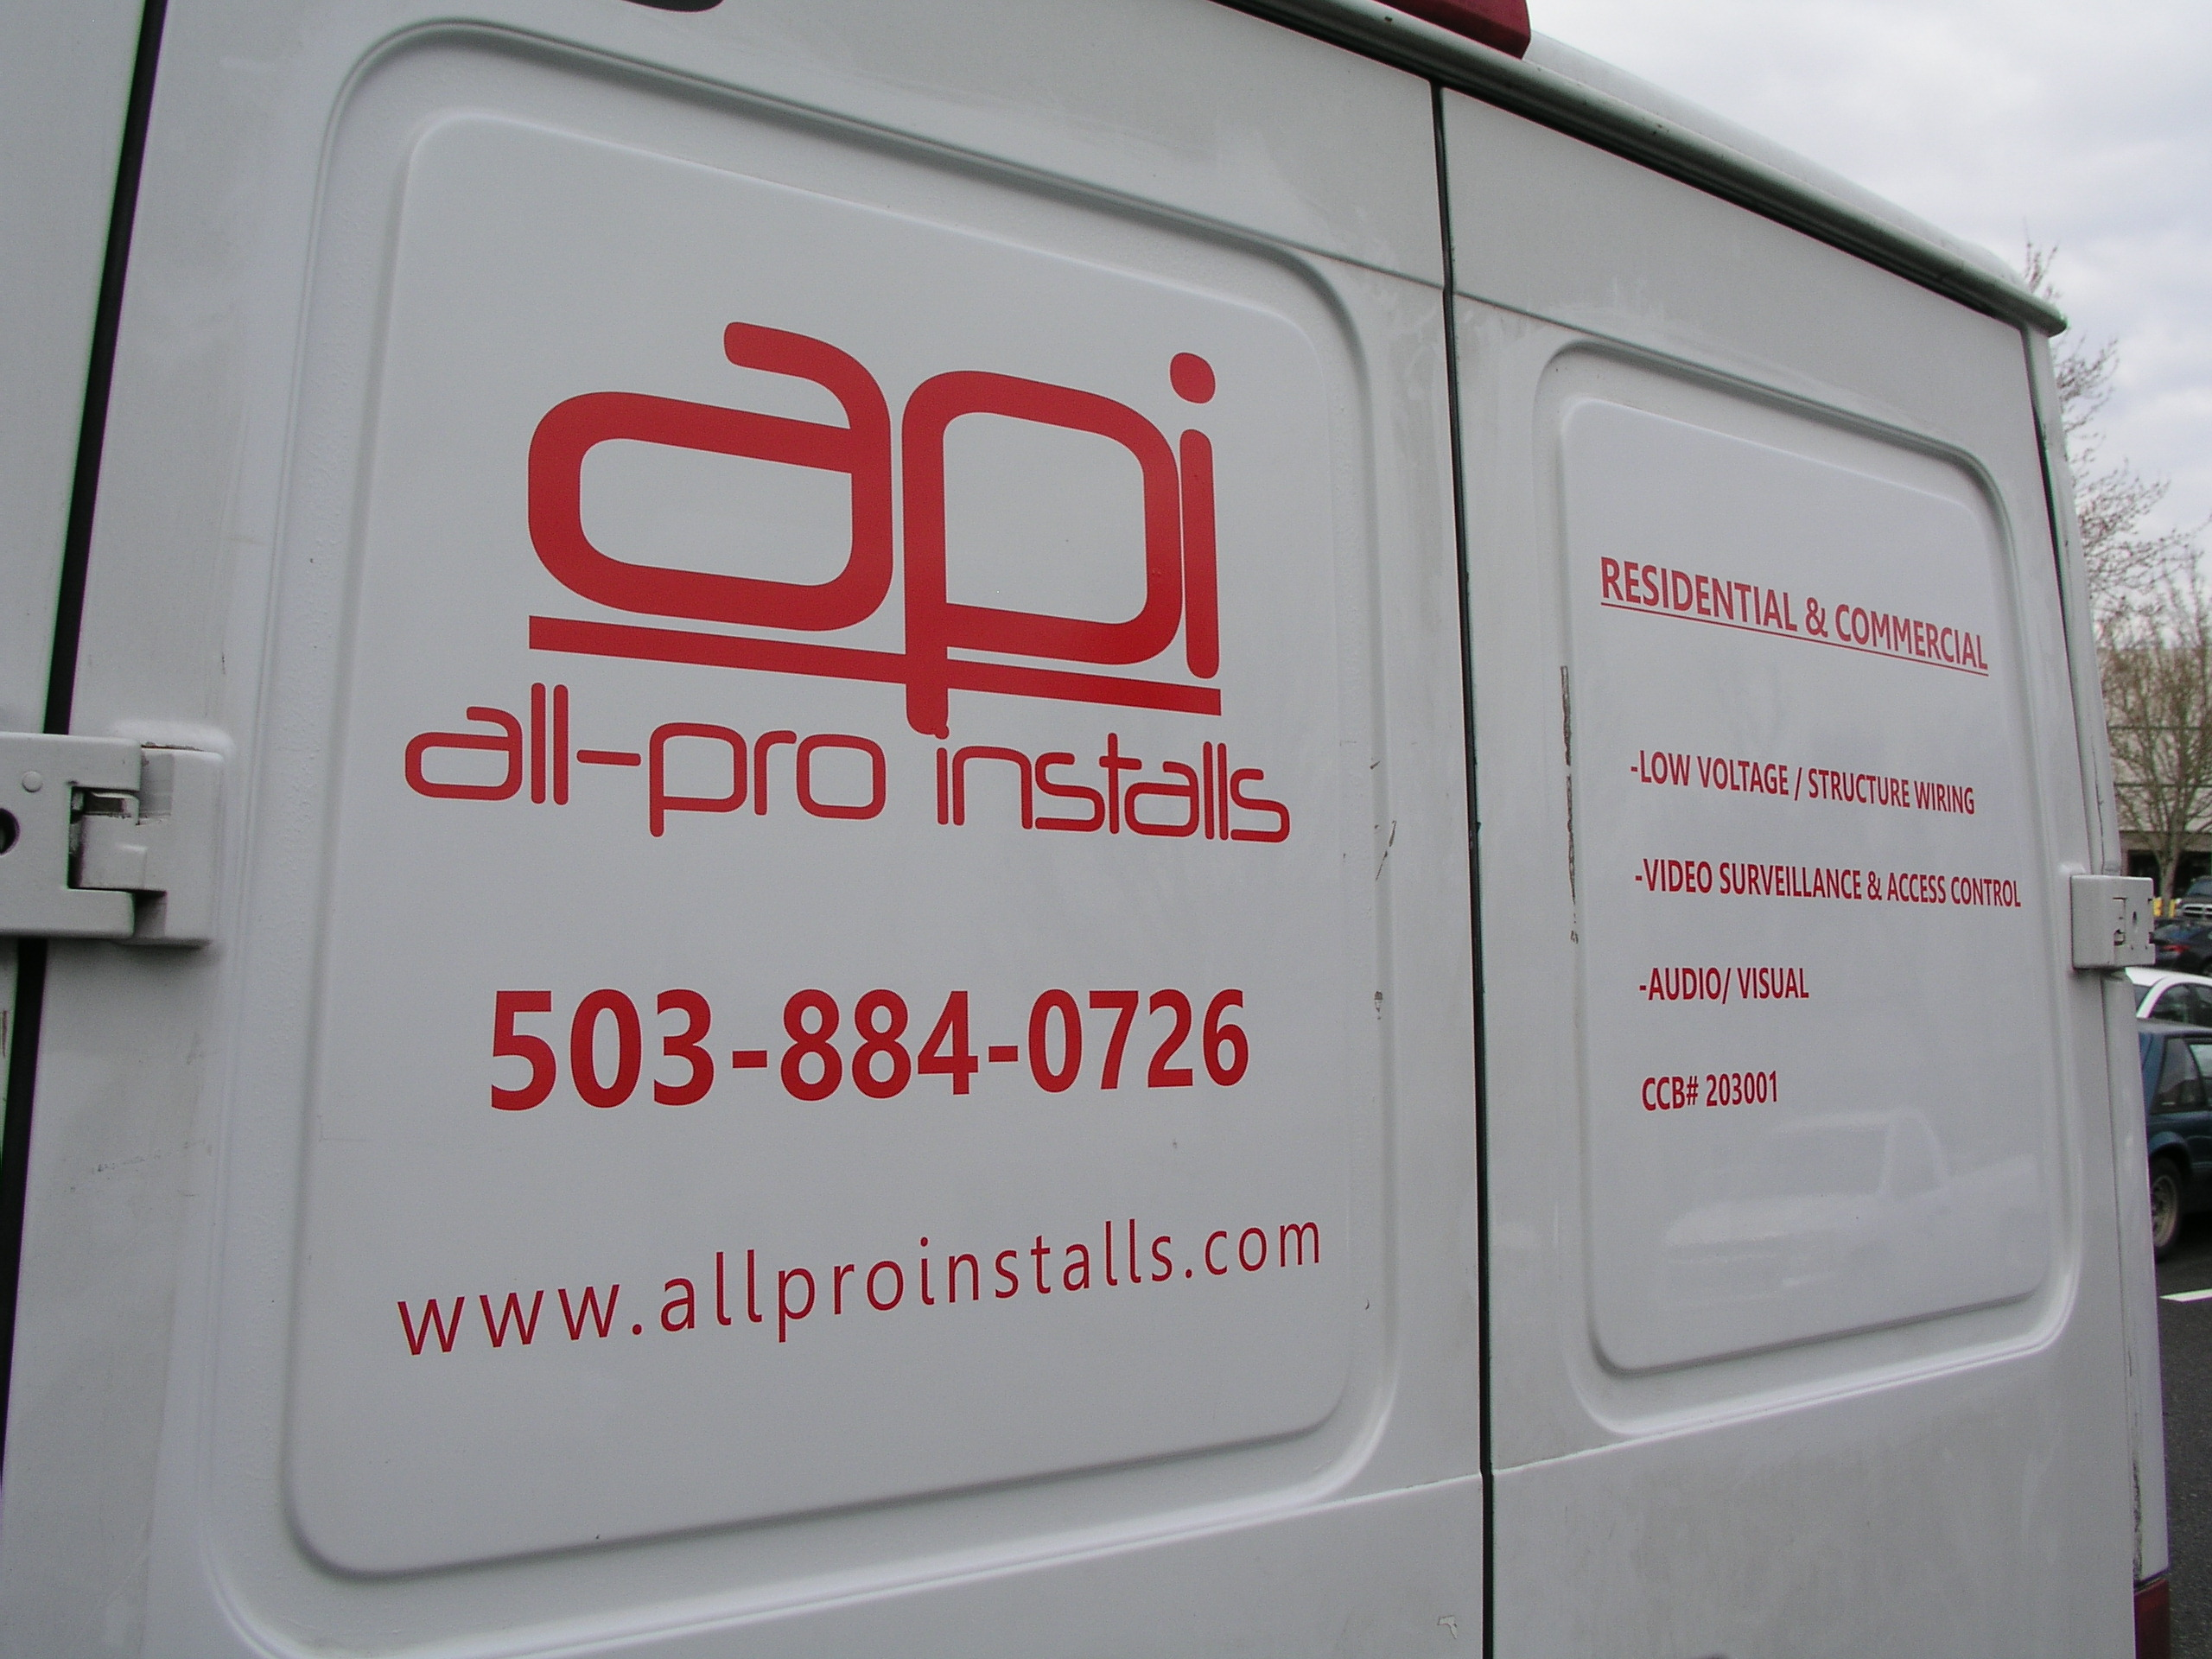 API - Branded Vehicle Graphics